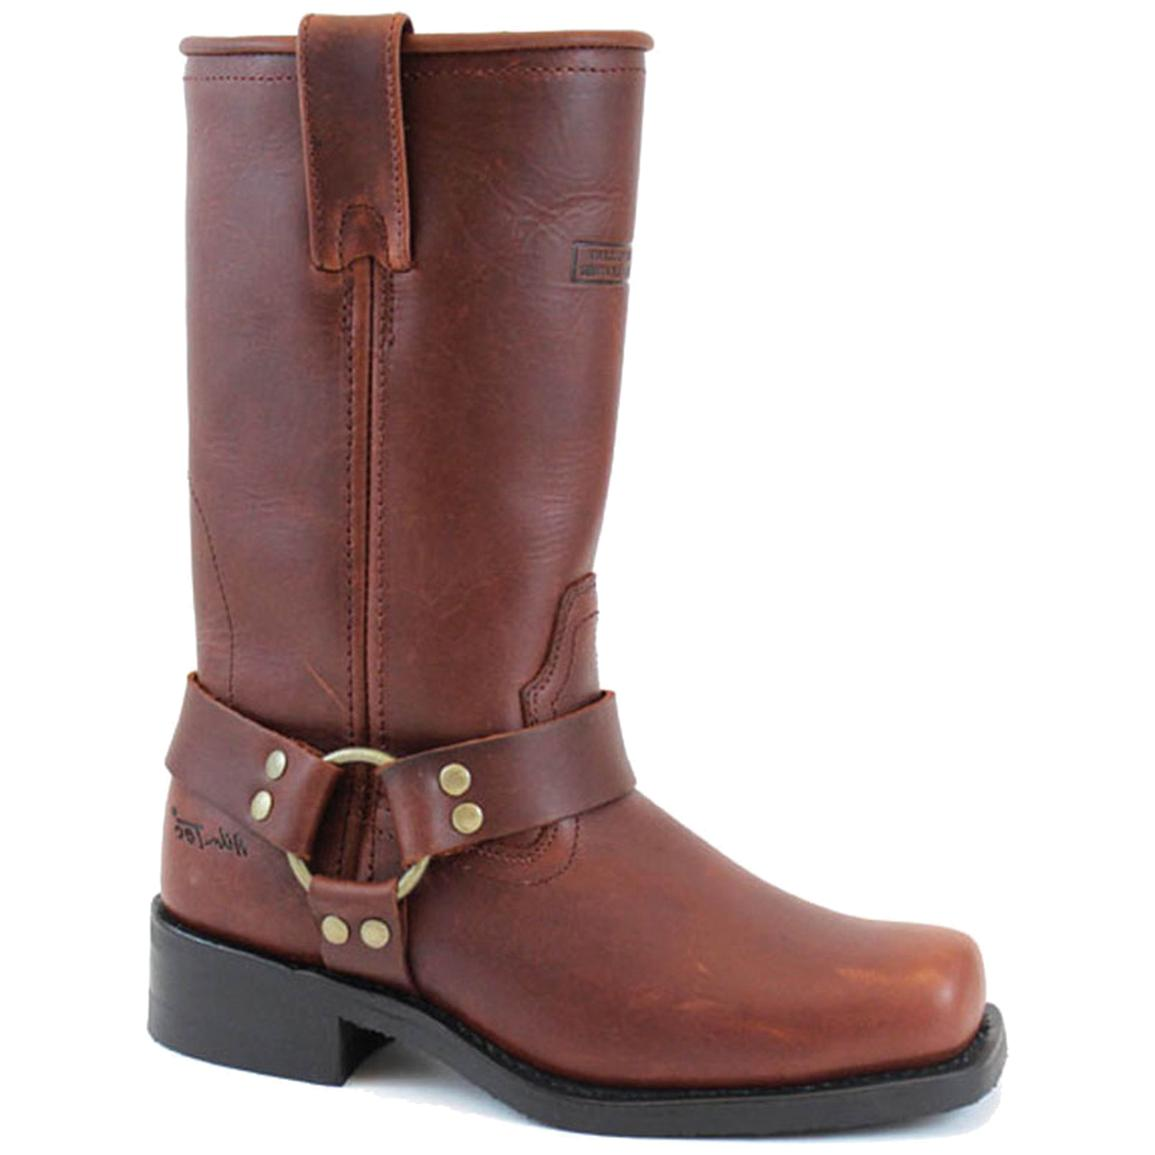 12 inch Women's Ad Tec® Leather Harness Boots, Reddish Brown